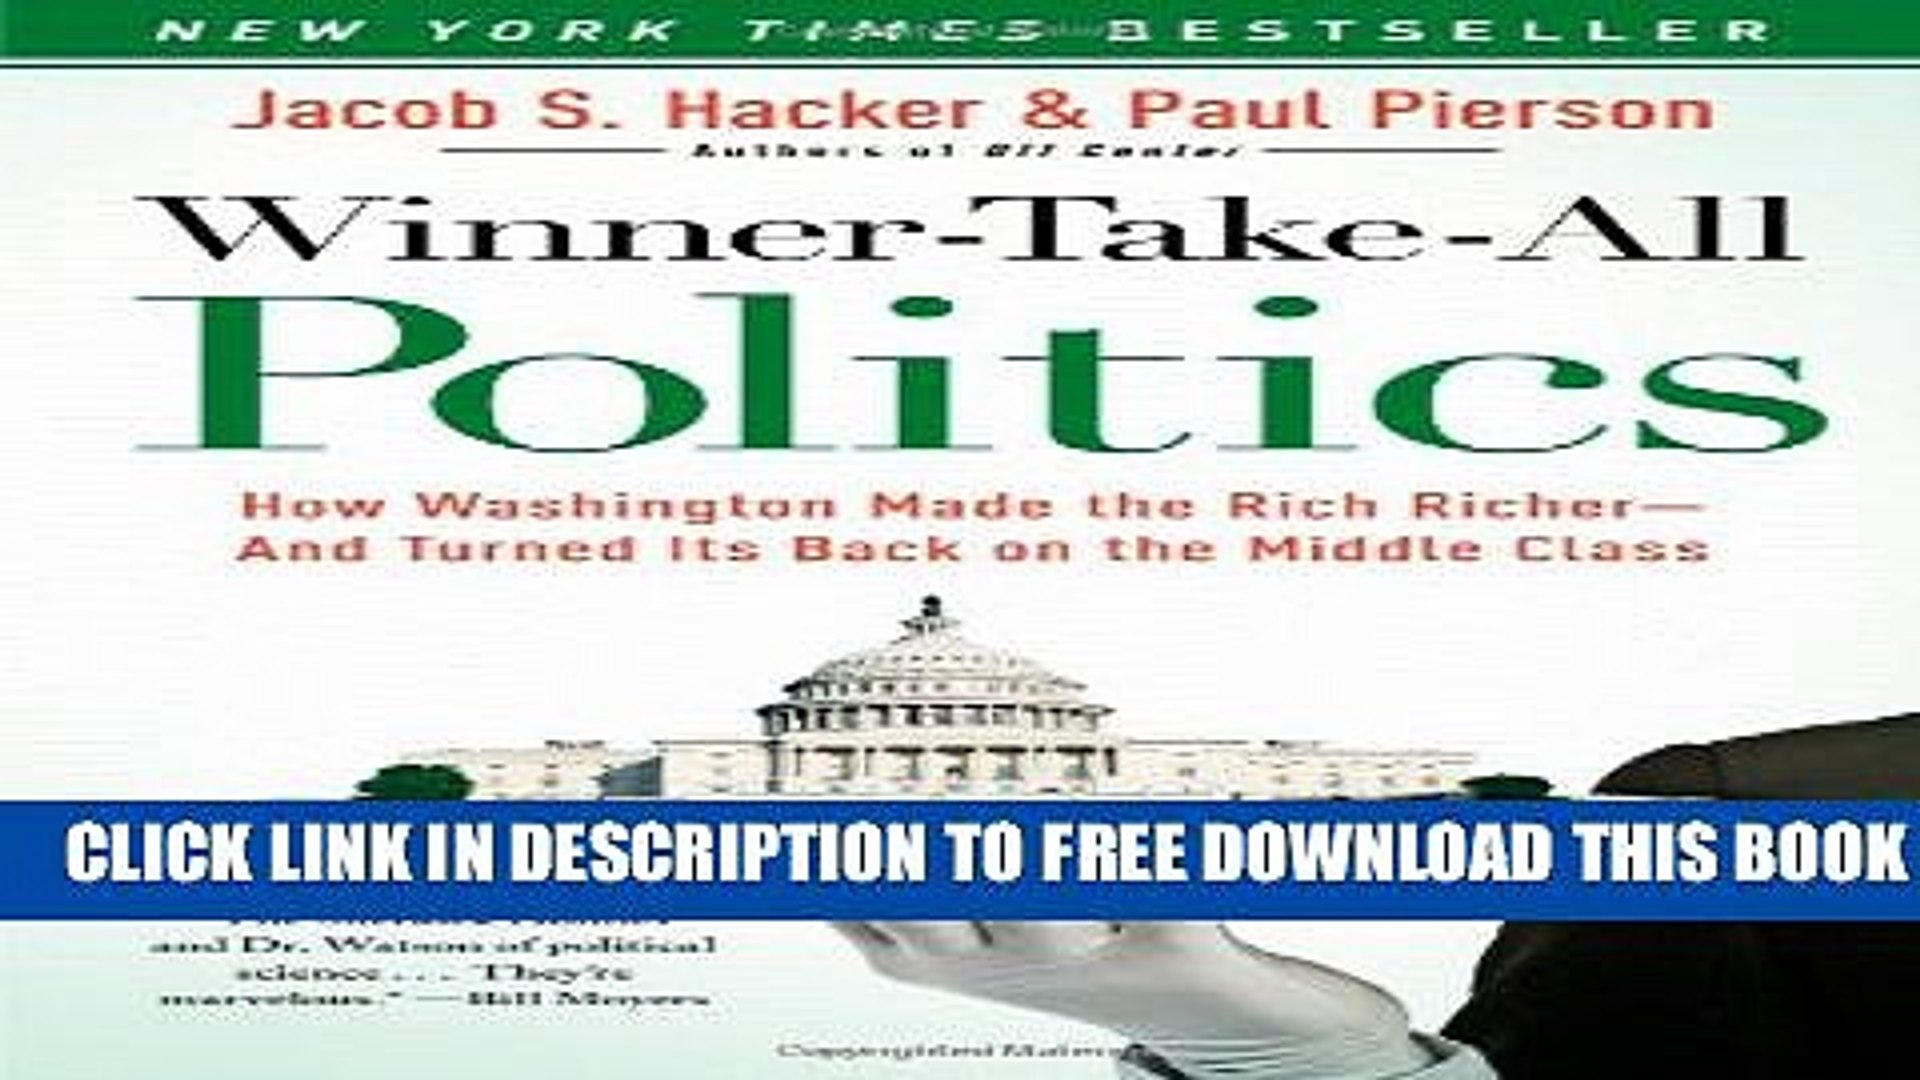 Collection Book Winner-Take-All Politics: How Washington Made the Rich Richer--and Turned Its Back